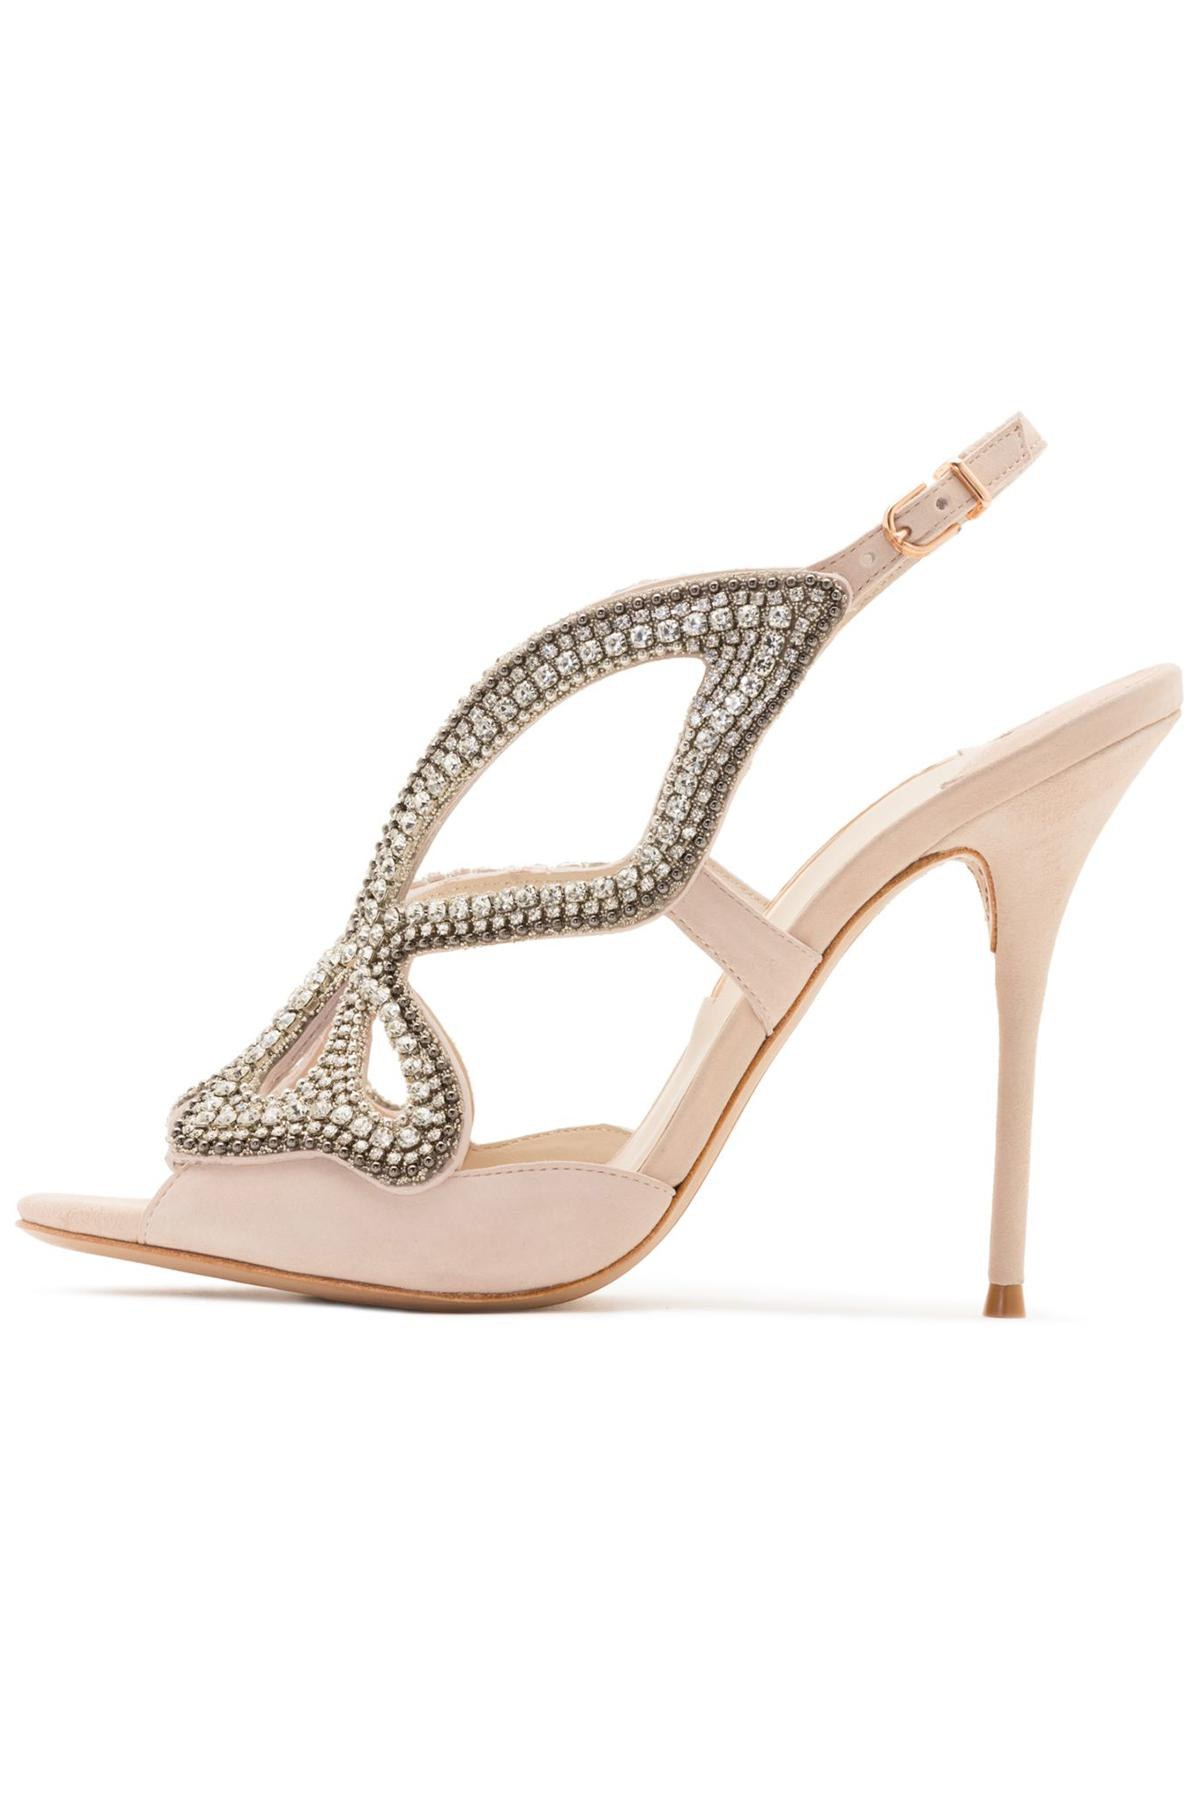 627da91c461 Lyst - Sophia Webster Madame Butterfly Crystal Sandal In Nude in Natural